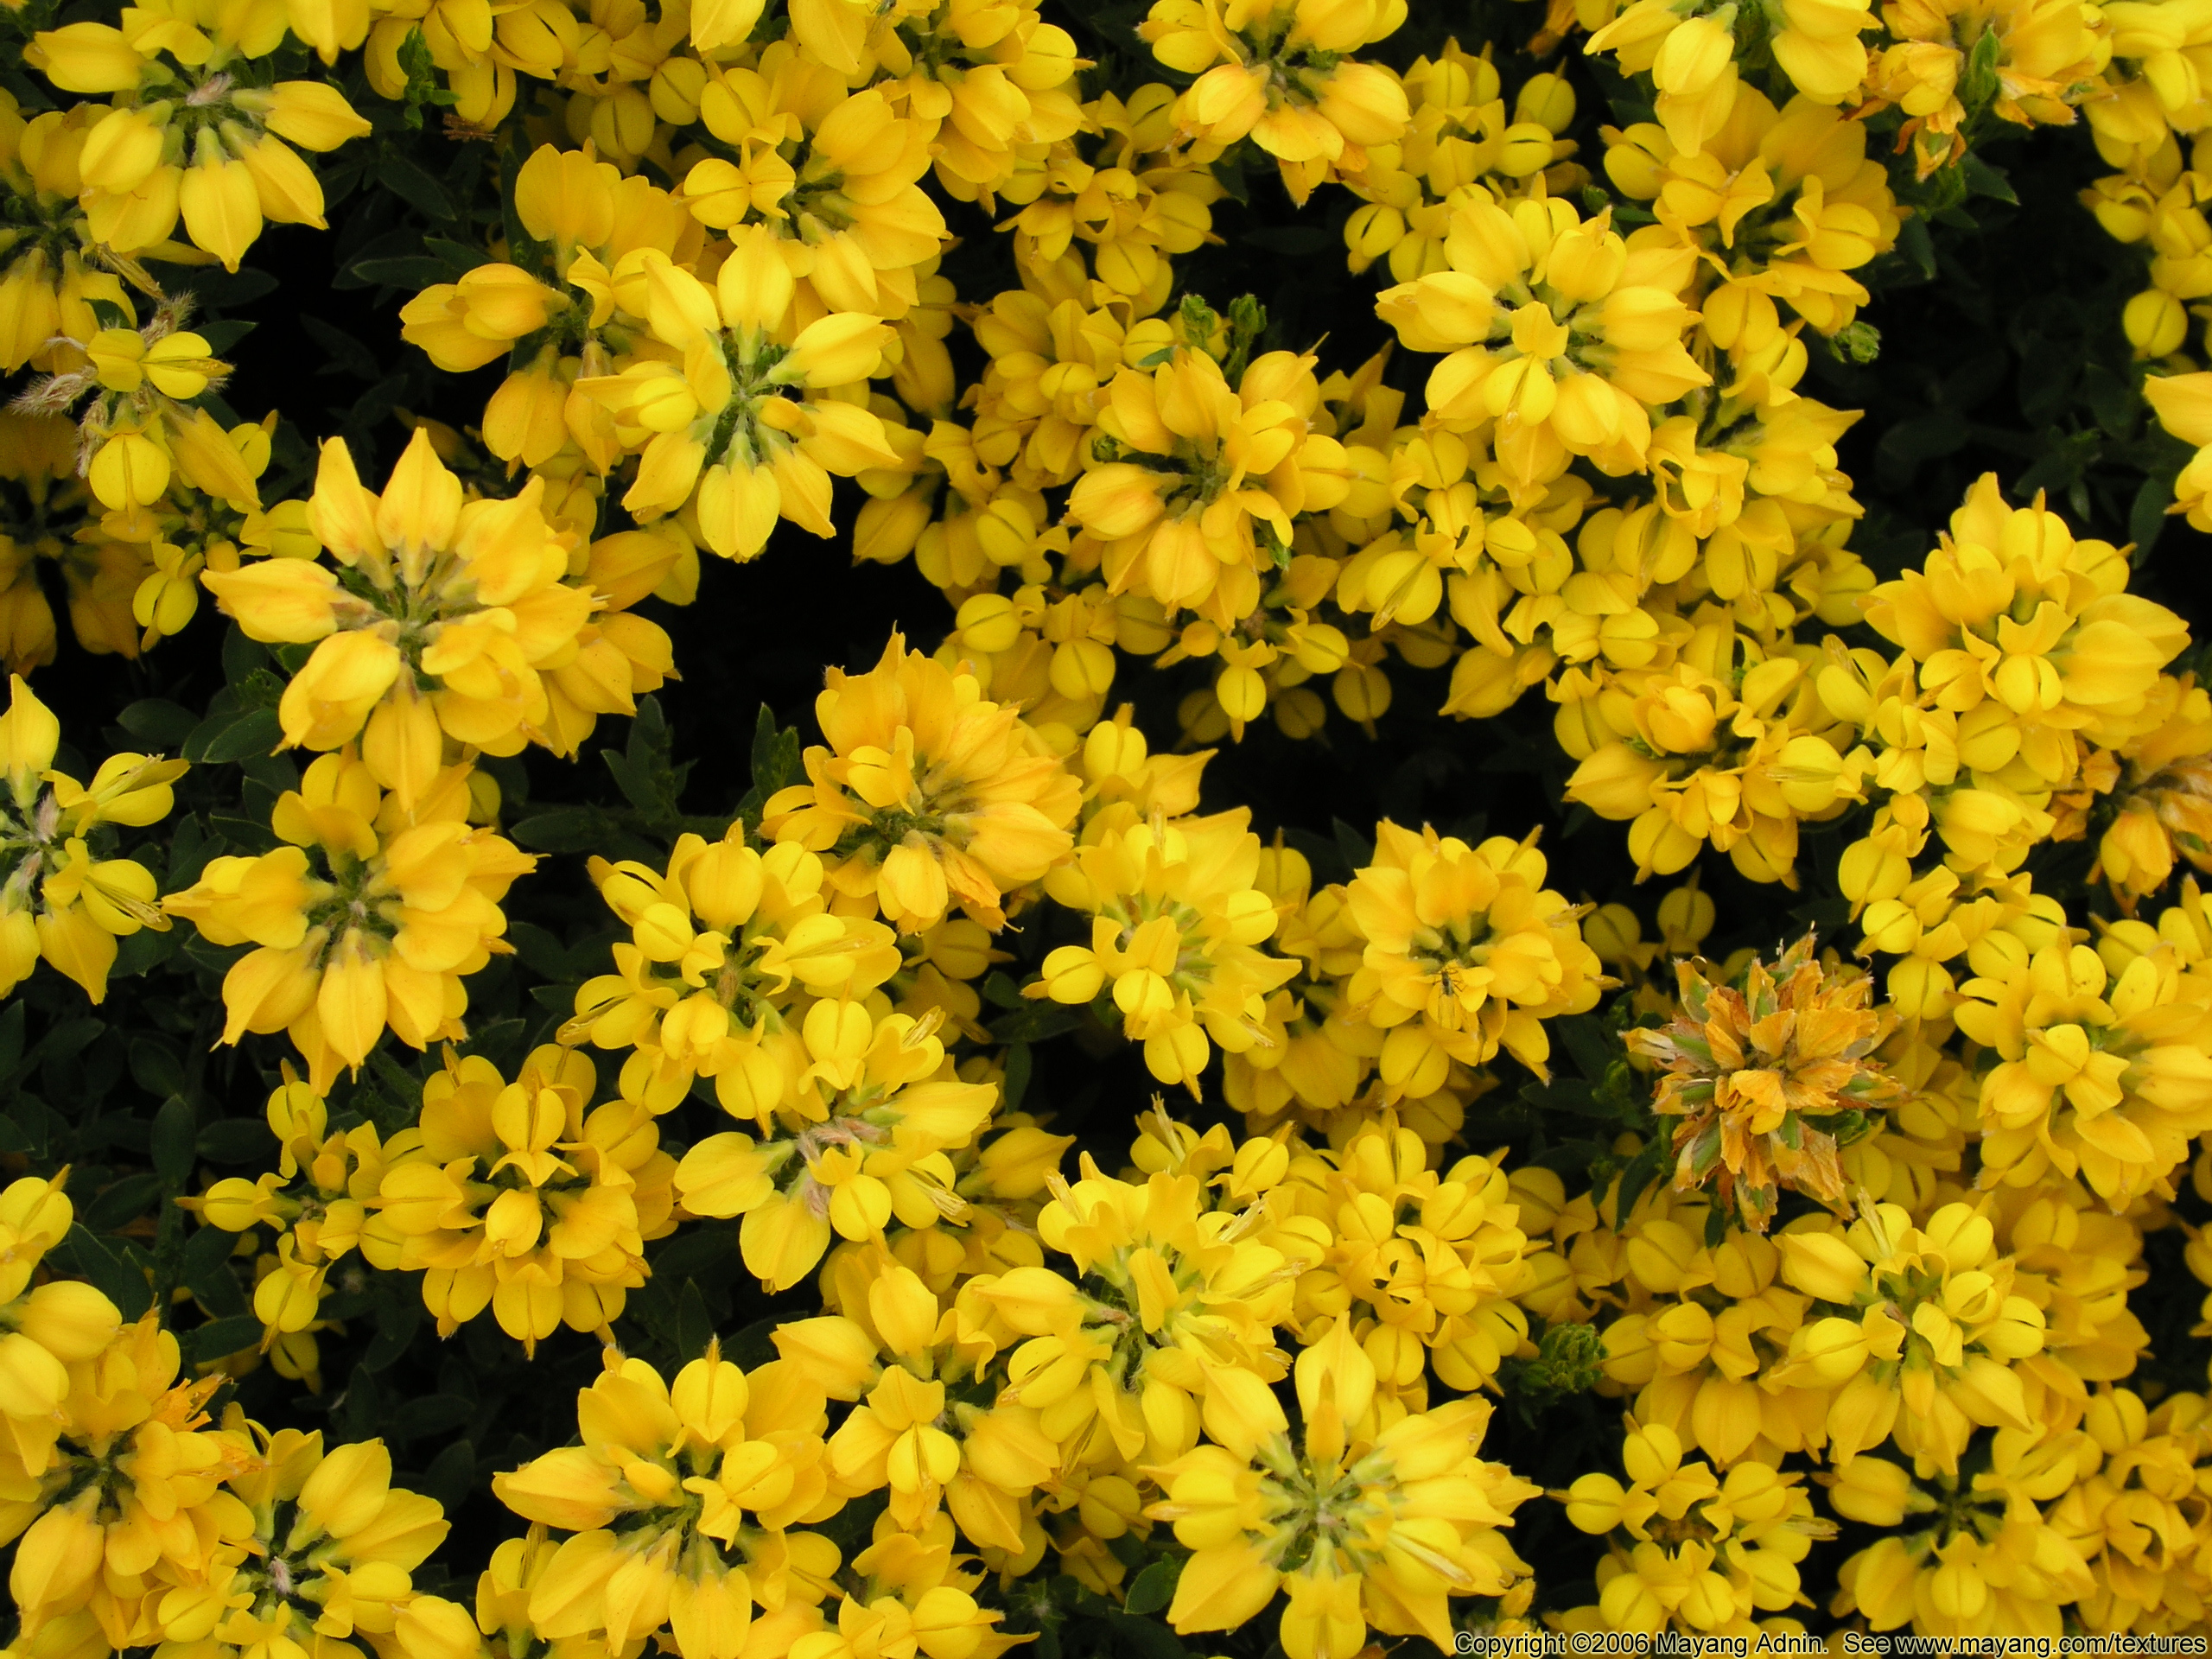 Free photo yellow flowers petals plant yellow non commercial plants with yellow flowers 17 cool wallpaper hdflowerwallpaper mightylinksfo